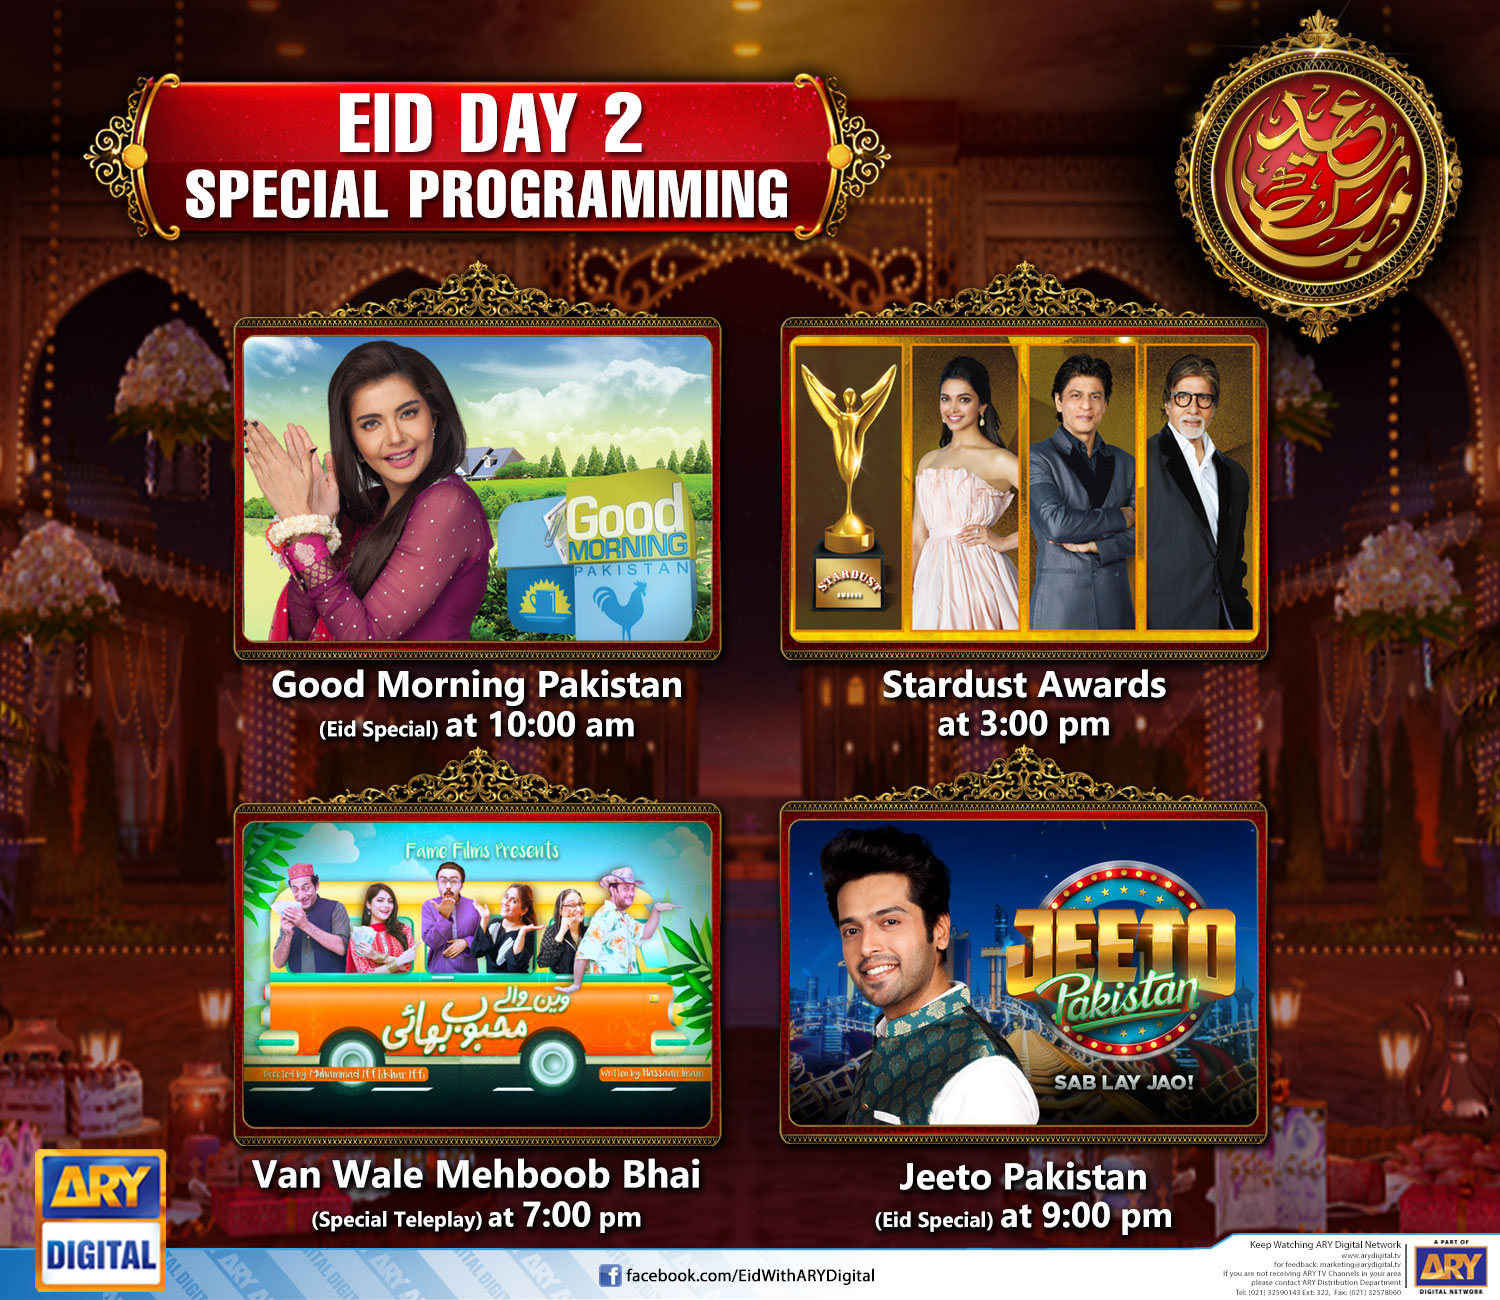 [Press Release] ARY Digital and ARY Zindagi brings exciting programs for Eid 2016 (2)